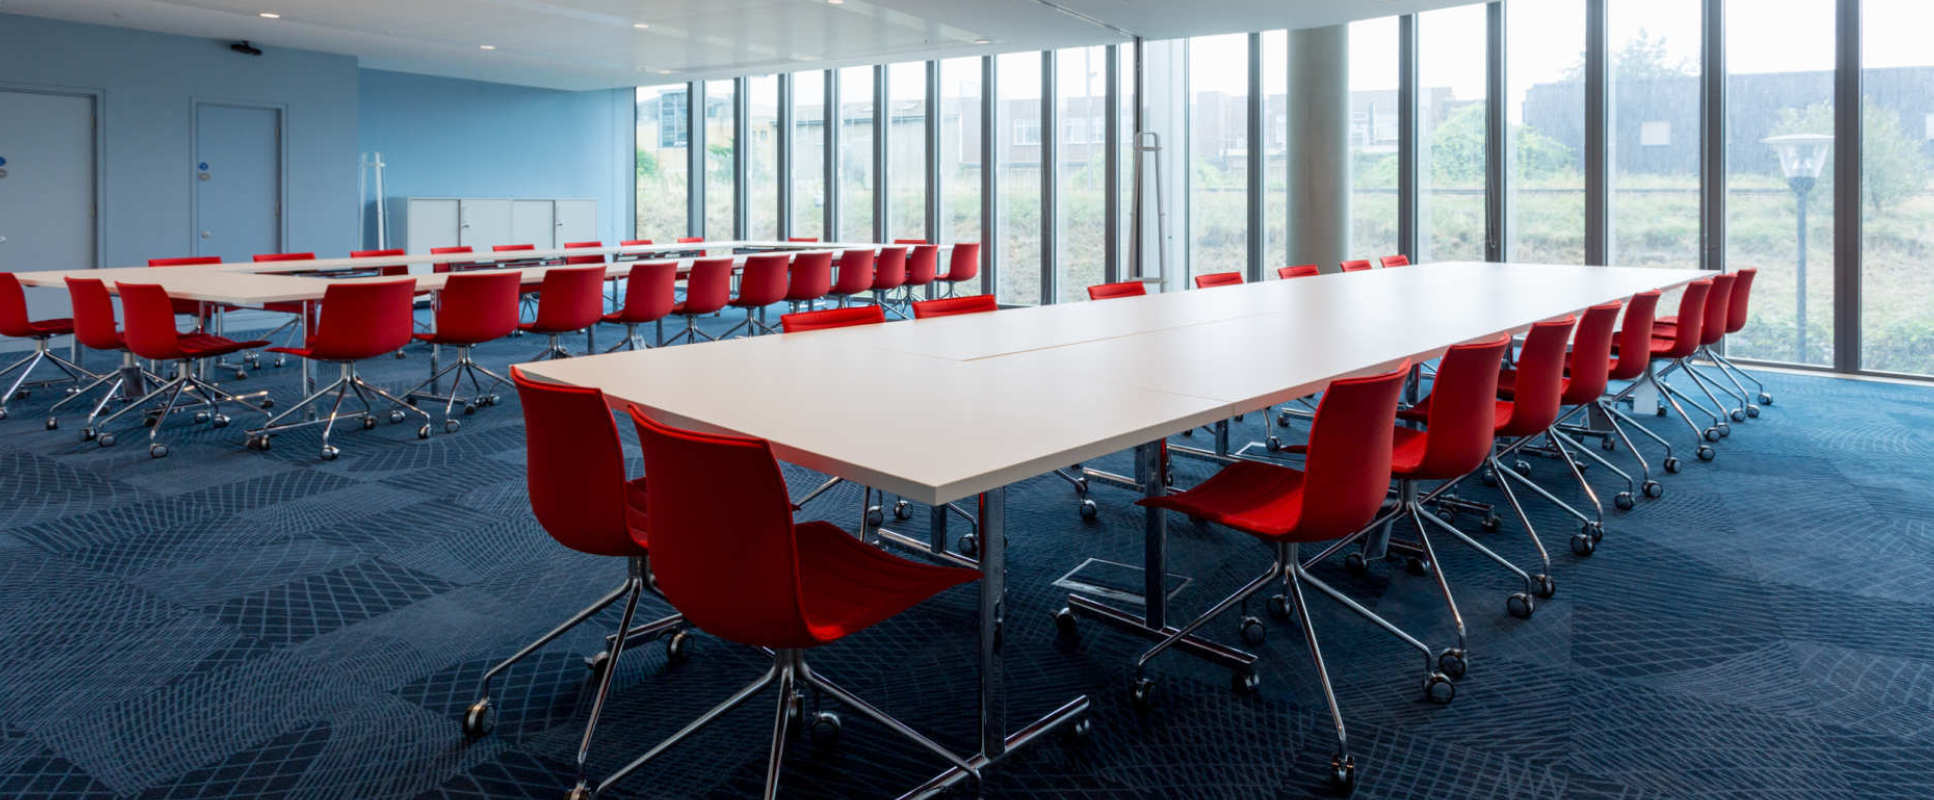 I-HUB conference rooms